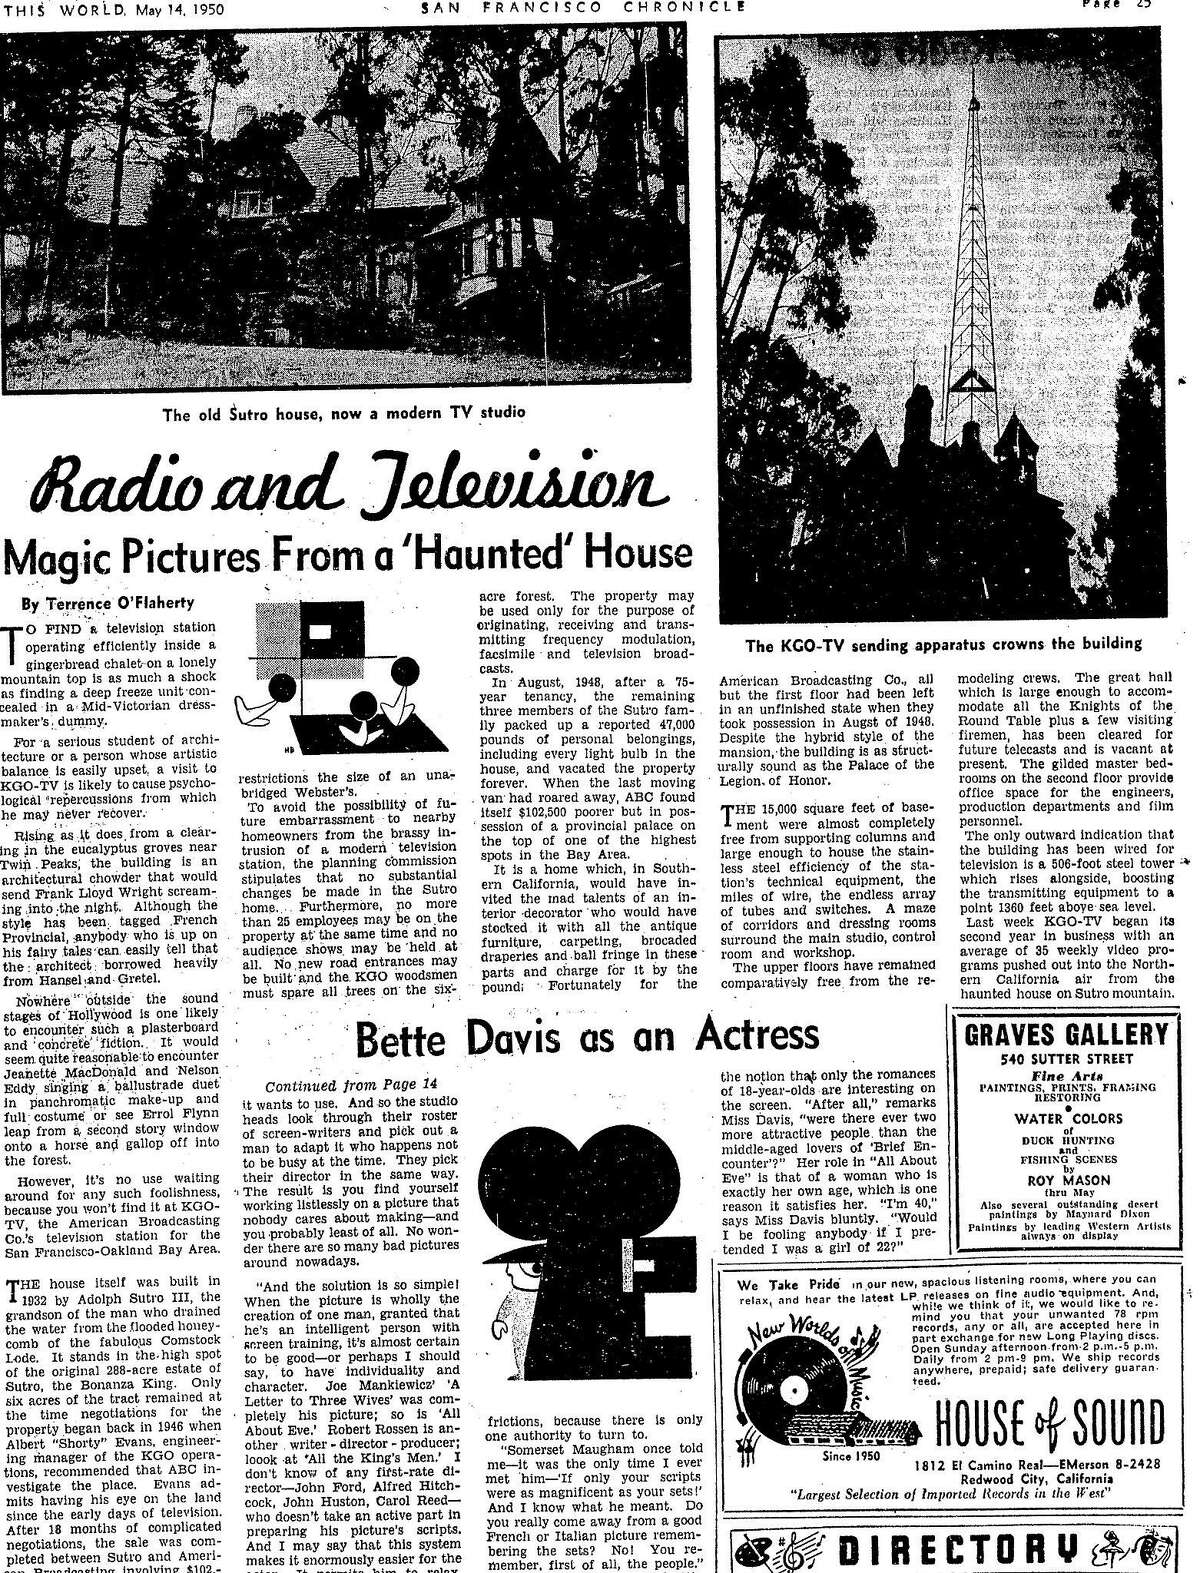 An article in the May 14, 1950 Chronicle on the Sutro Mansion which housed the KGO studios from 1948 to 1973. There was a 500 foot tower next to the house, and it would be replaced in 1972 with the Sutro Tower